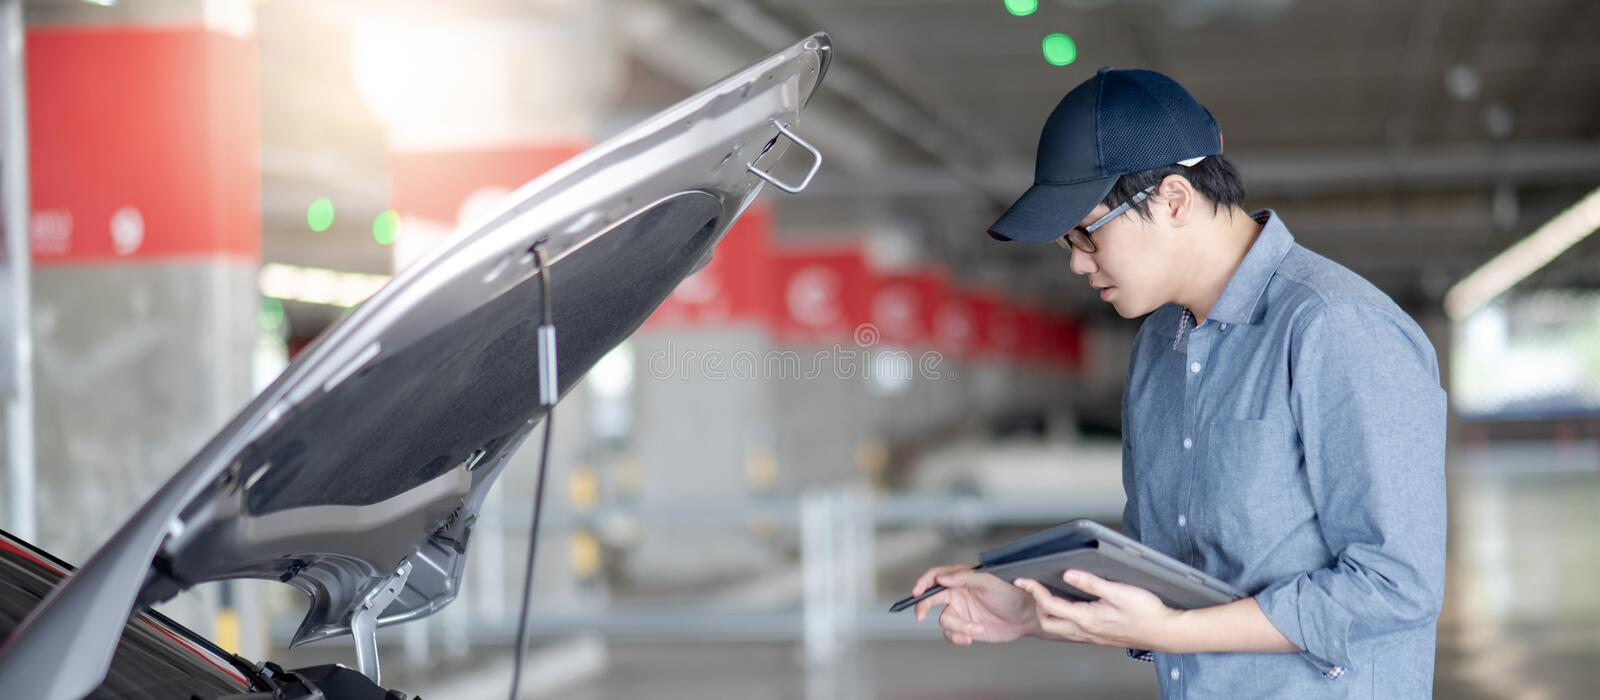 Asian auto mechanic checking the car using tablet. Asian auto mechanic holding digital tablet checking car engine under the hood in auto service garage stock photos